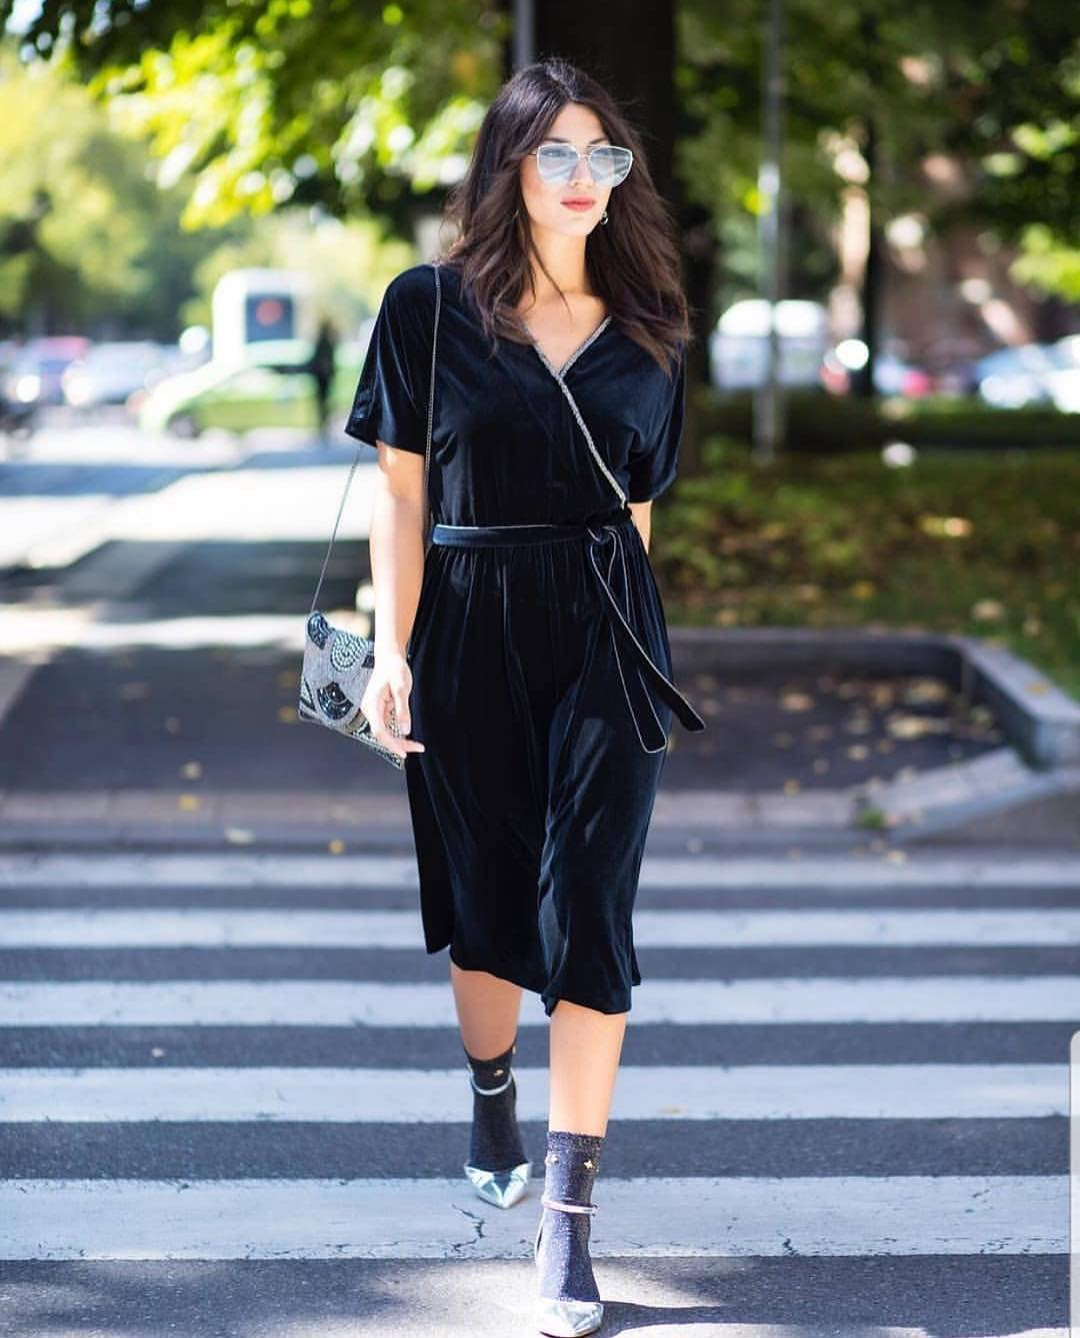 Black Velour Wrap Dress With Grey Socks And Silver Pumps 2019